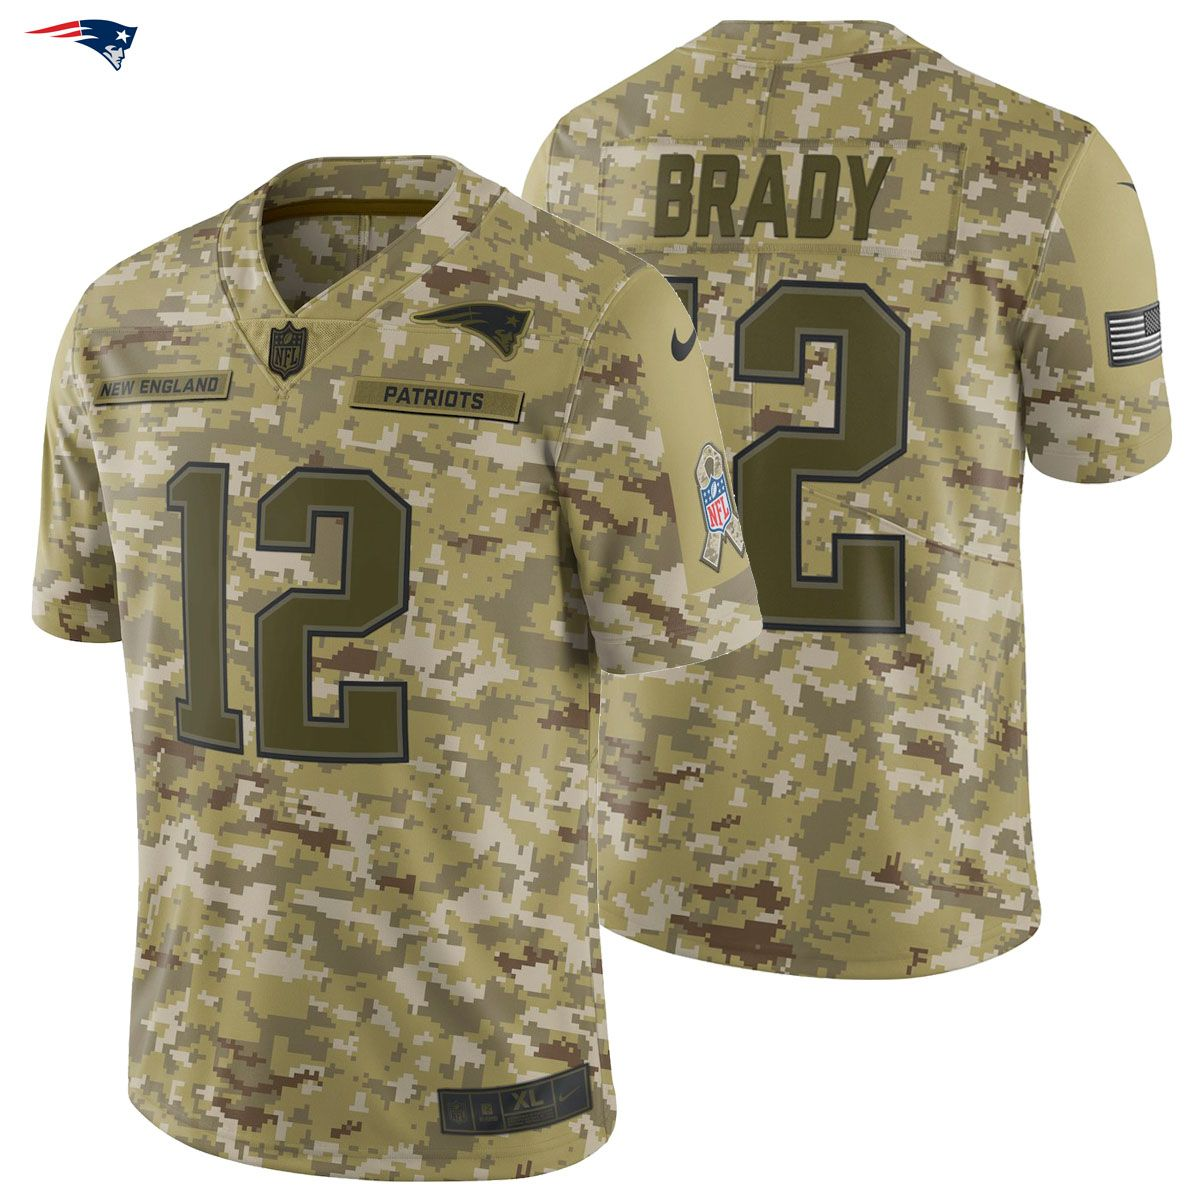 91c5f154c Tom Brady  12 Nike 2018 Salute to Service Limited Jersey New England  Patriots Army Salute The Troops! The NEW 2018 Salute To service Line Is  Finally Here!